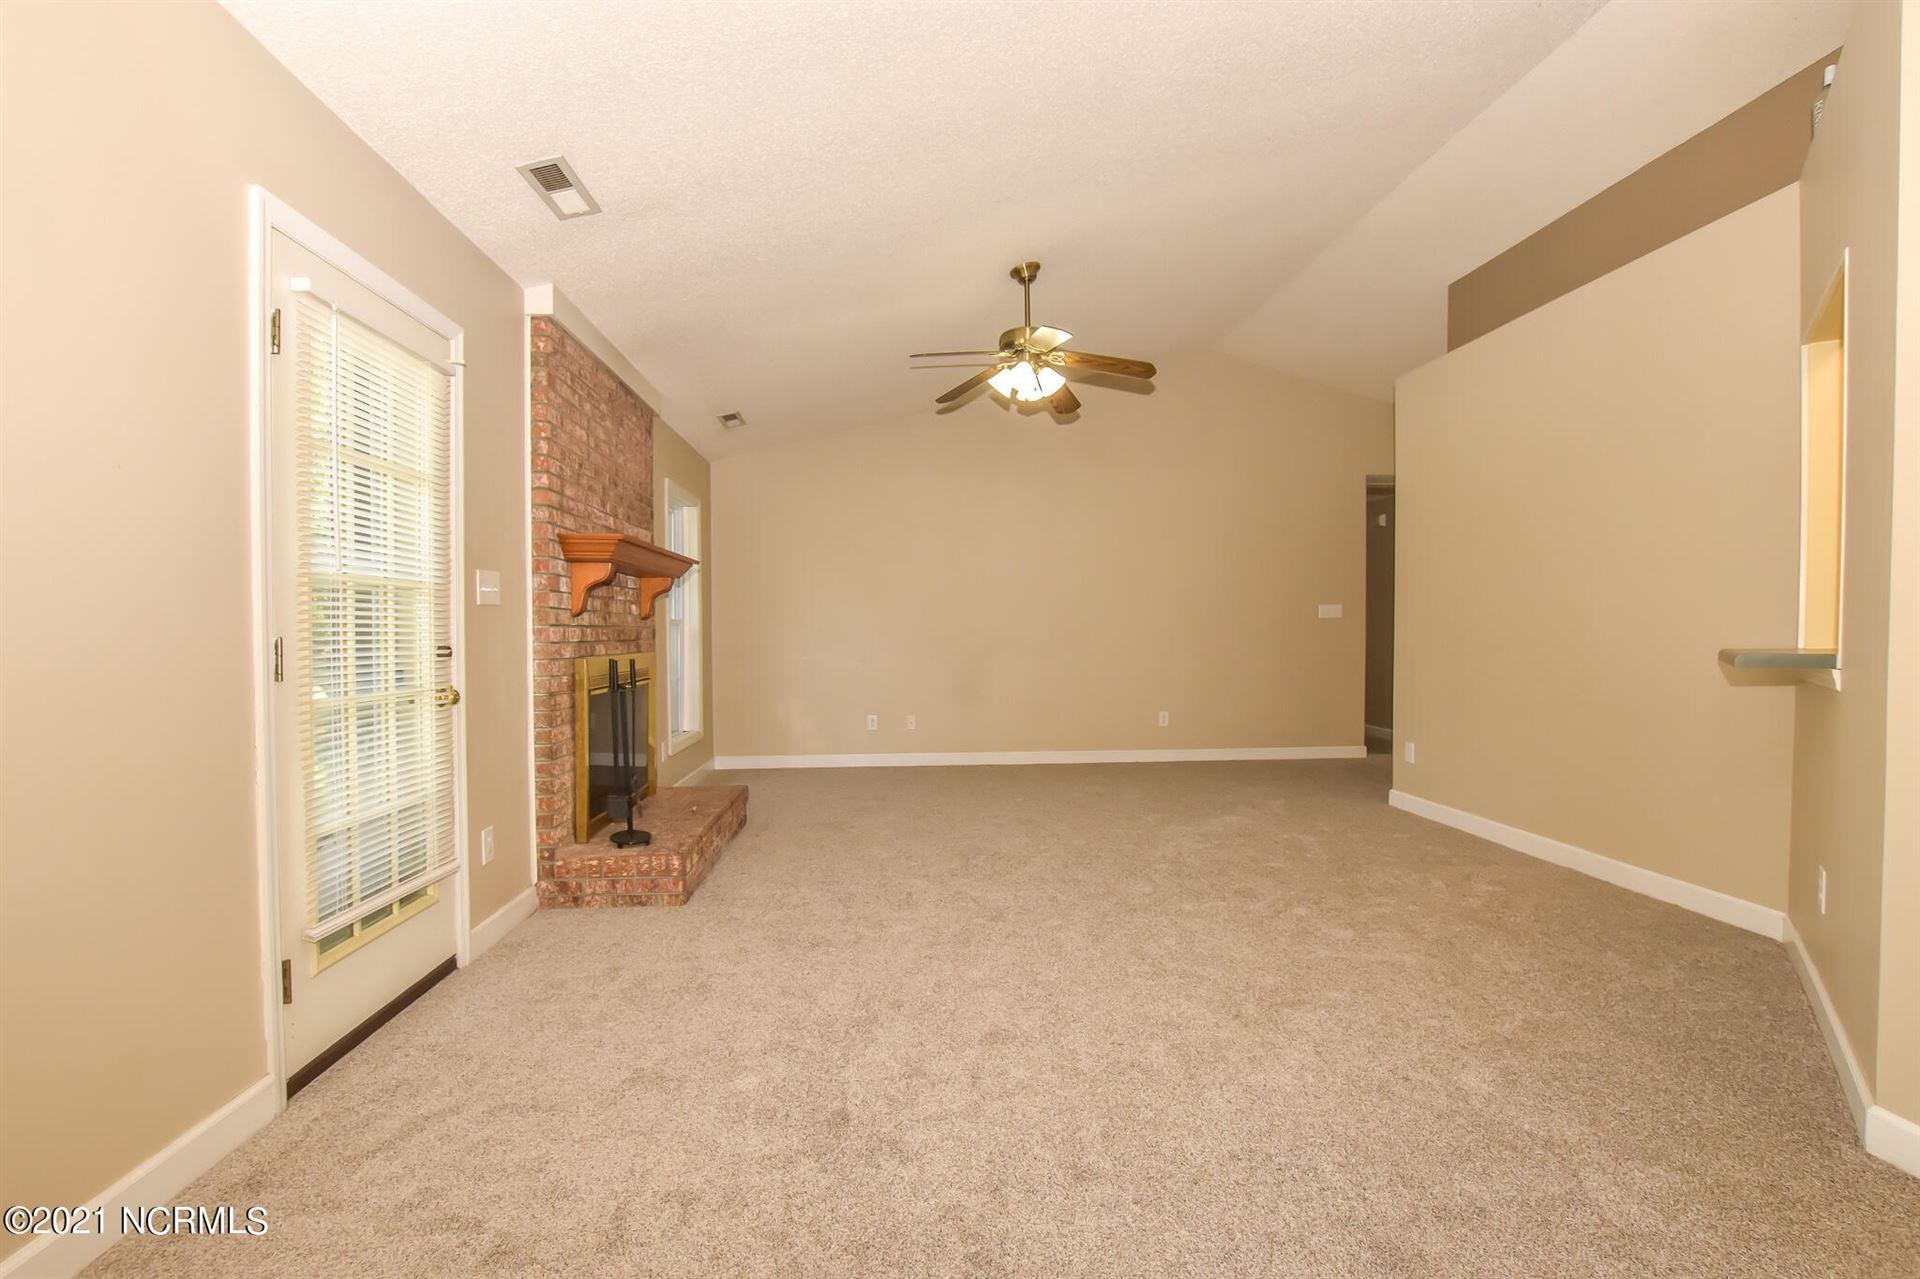 Photo of 315 Peppertree Court, Jacksonville, NC 28540 (MLS # 100290643)